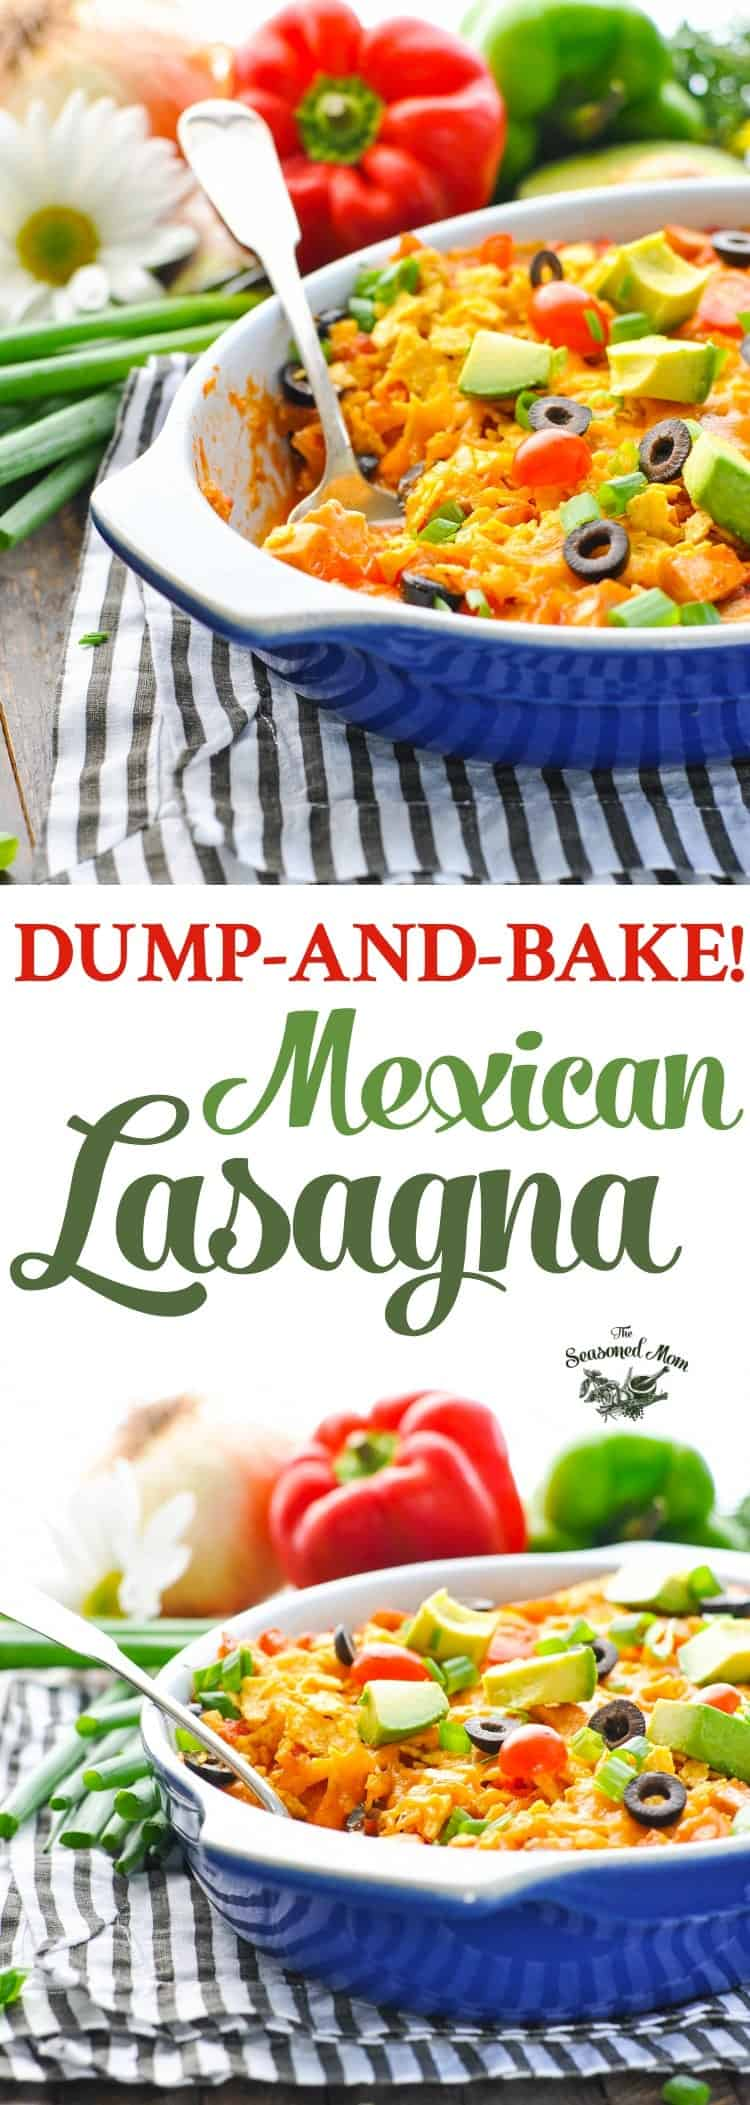 Dump and bake mexican lasagna the seasoned mom this dump and bake mexican lasagna is an easy dinner recipe that cooks in forumfinder Images